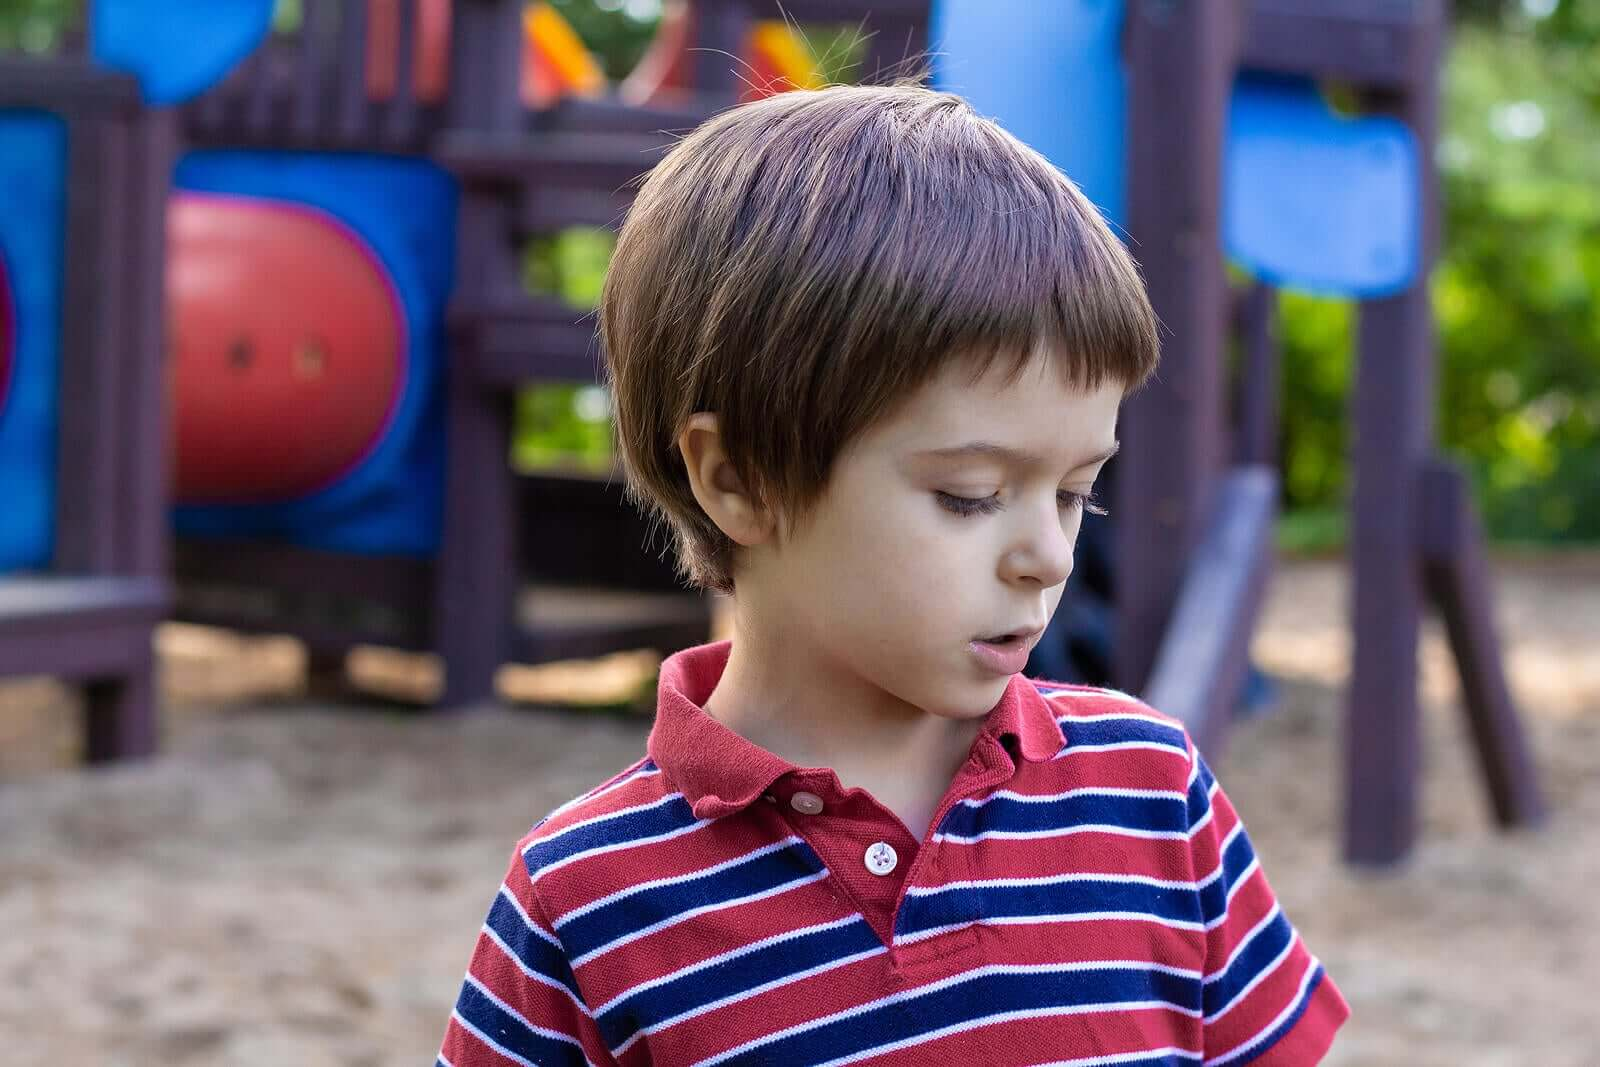 A child talking to himself on a playground.